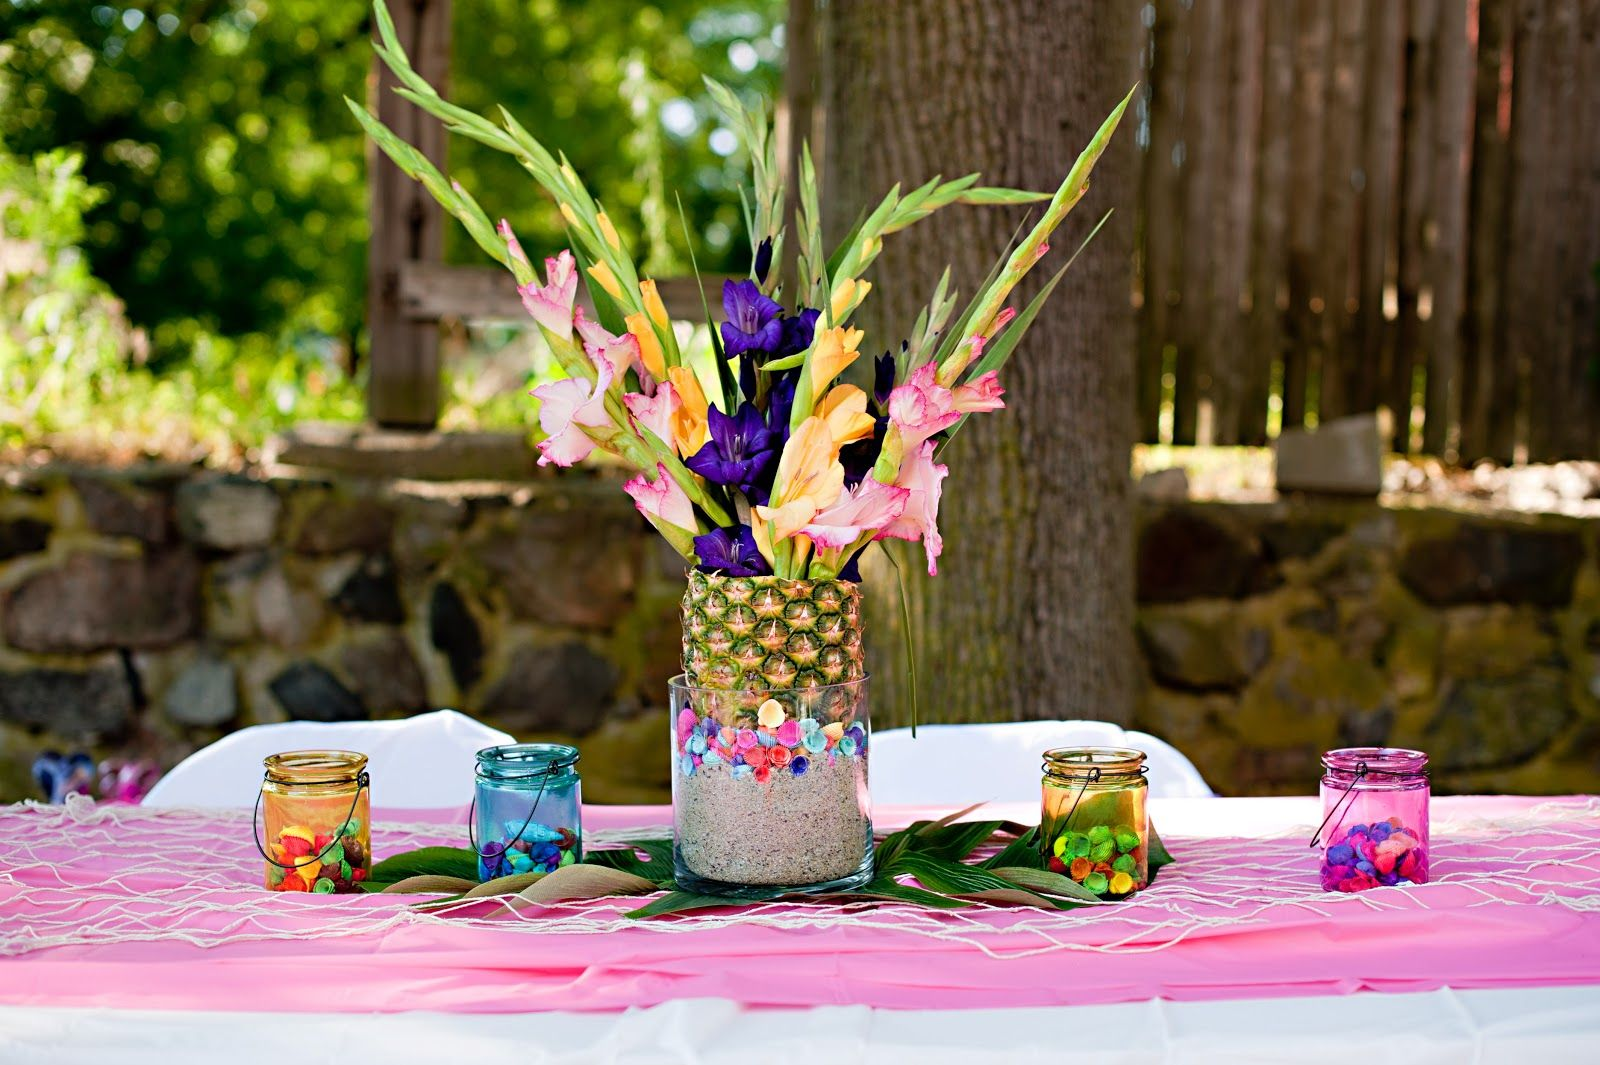 Luau party table decoration ideas the adult 39 s tables had Table decoration ideas for parties